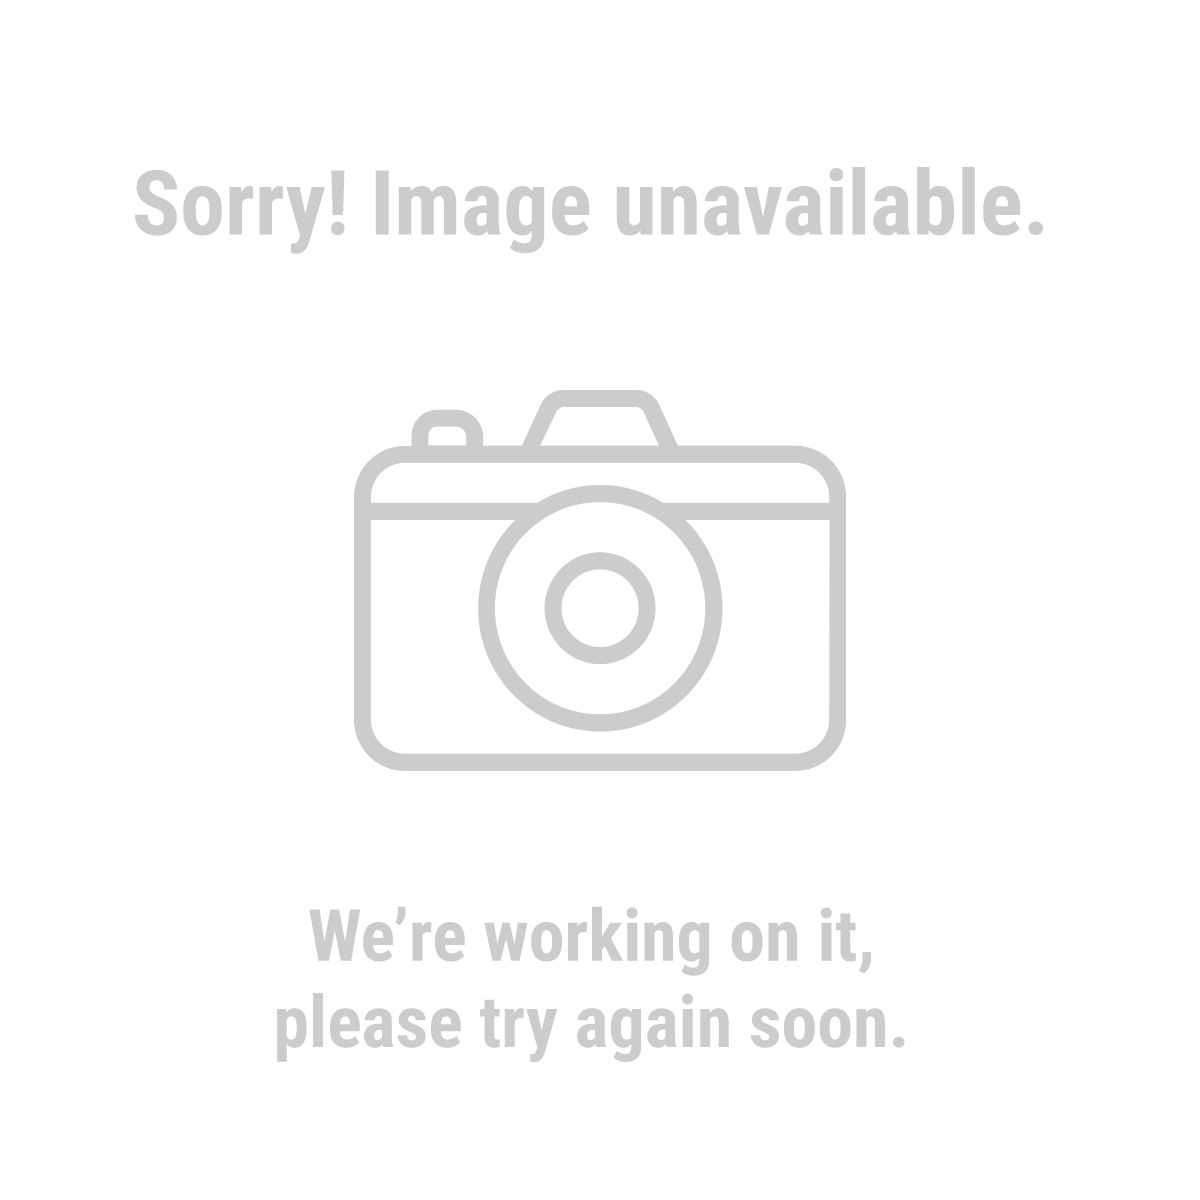 Central Pneumatic 60637 Pancake Air Compressor, Oilless 1/3 Horsepower, 3 Gallon, 100 PSI